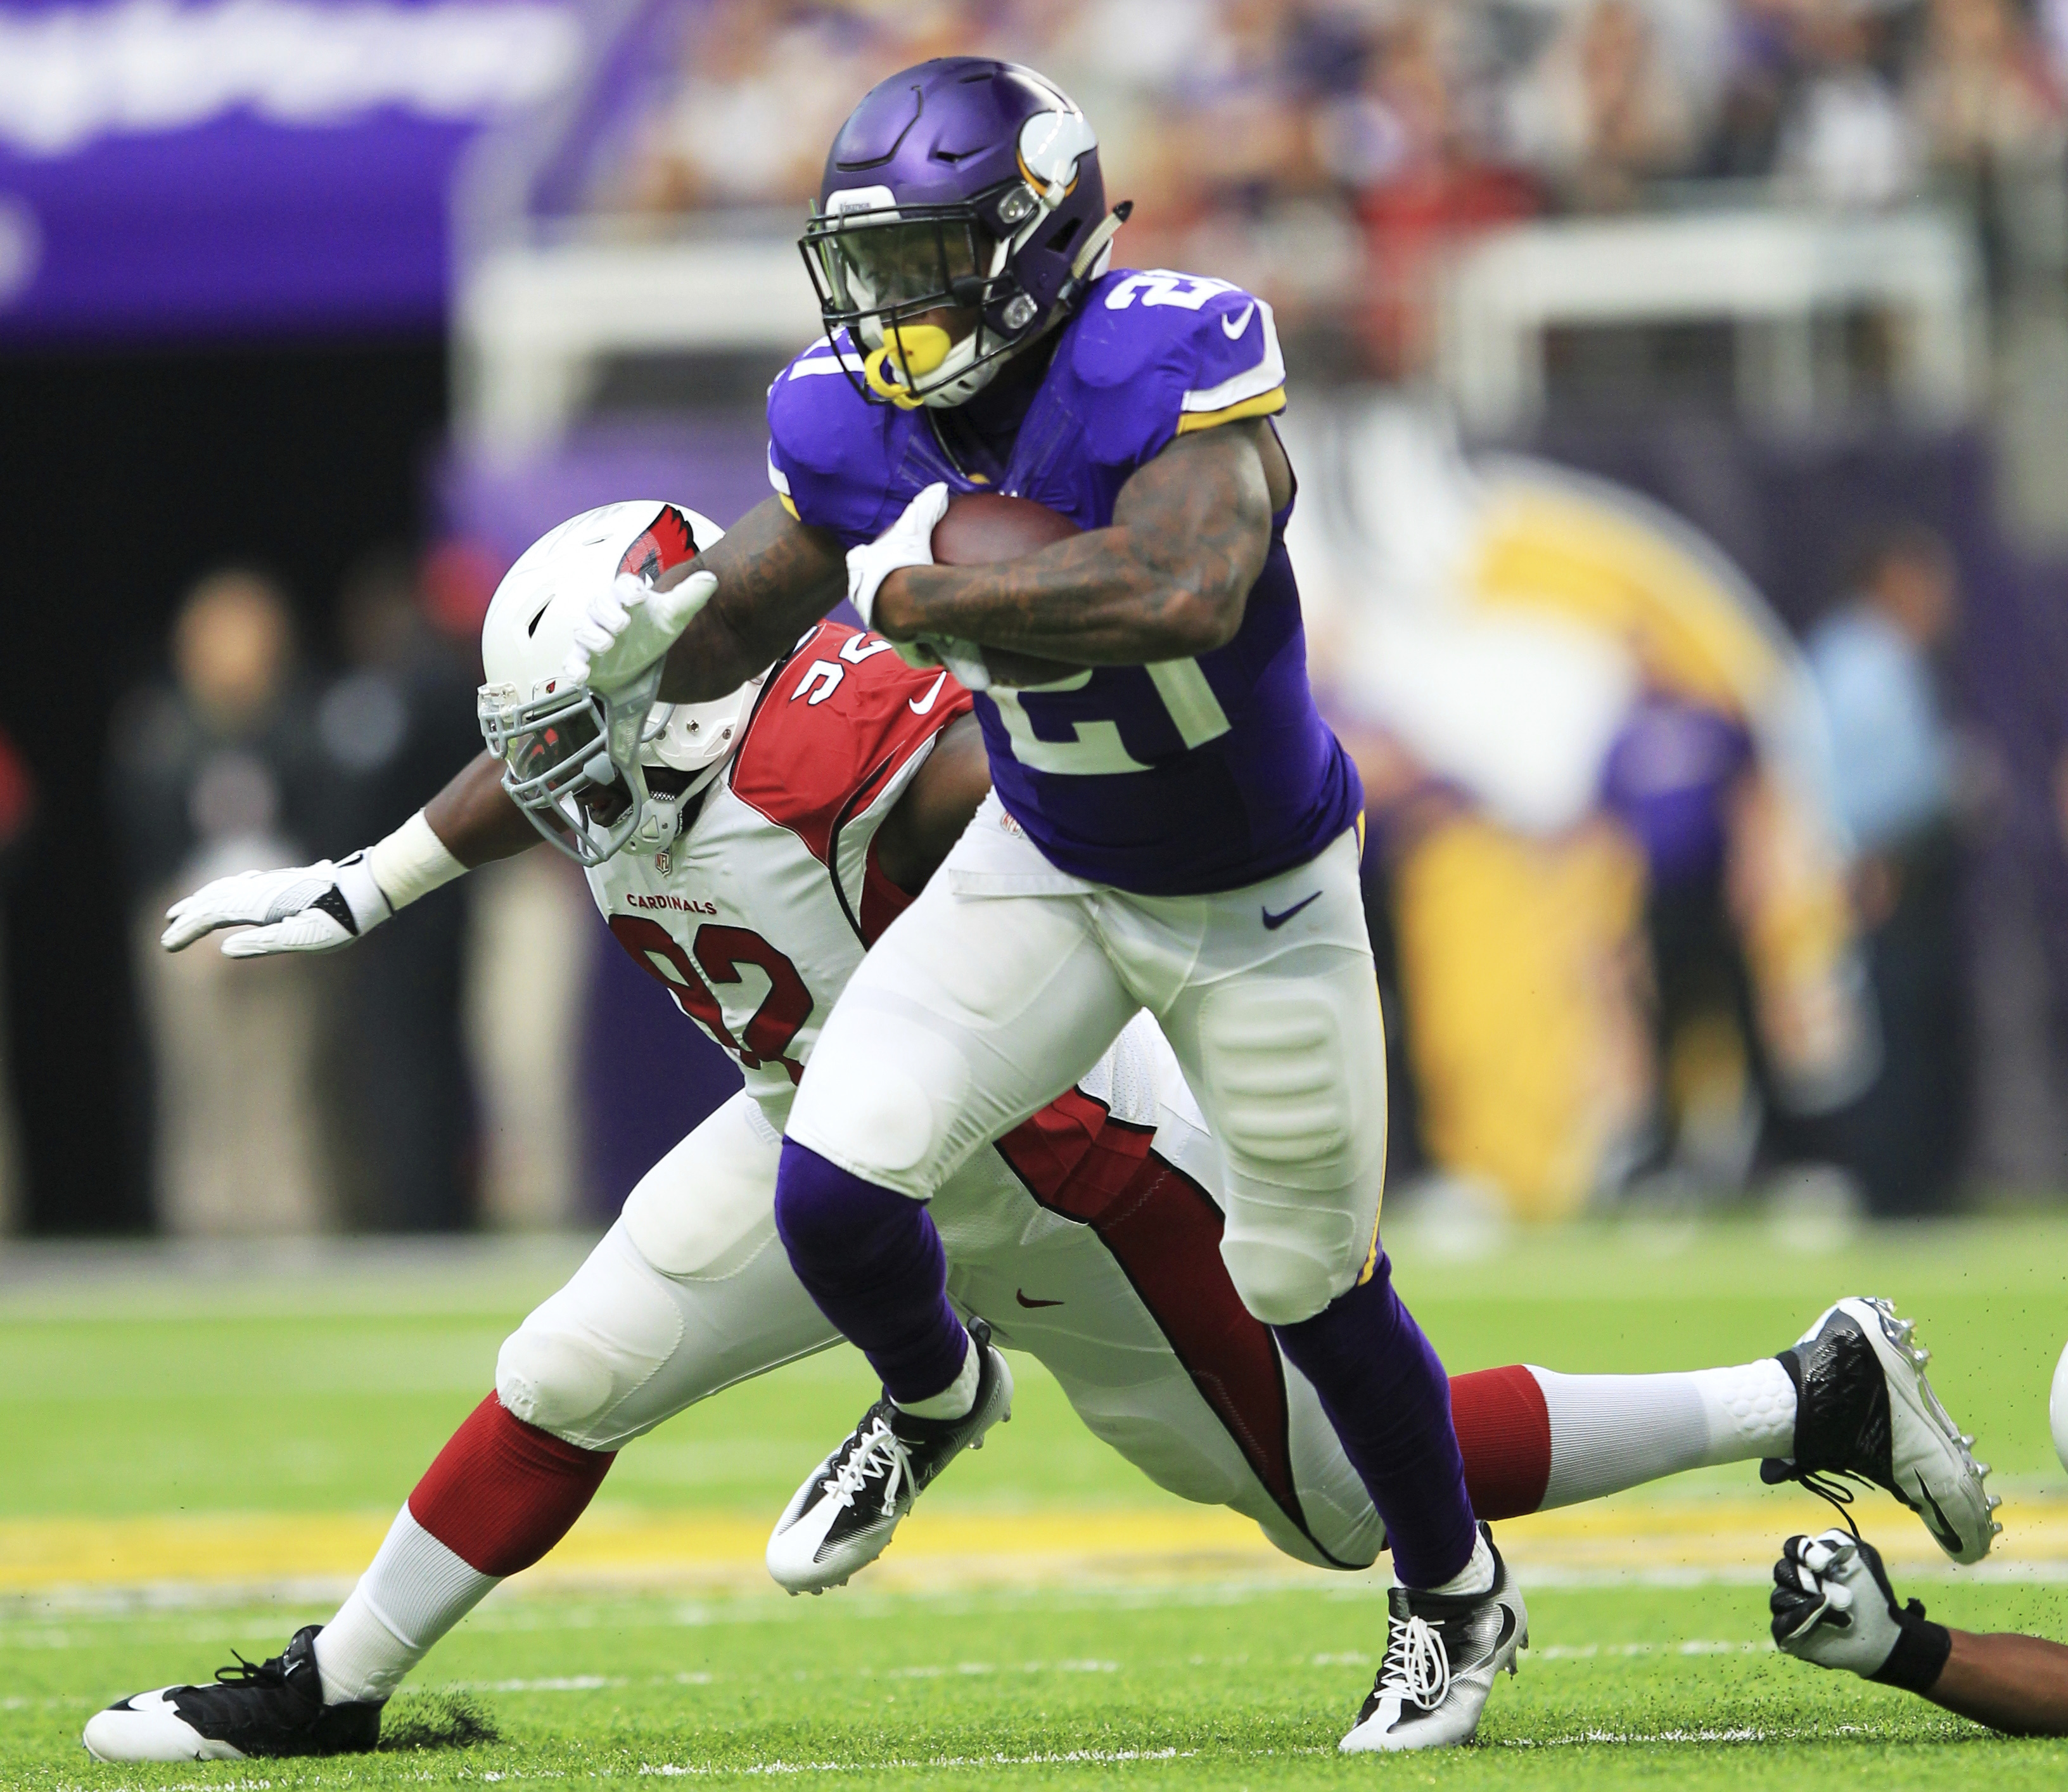 Minnesota Vikings running back Jerick McKinnon (21) runs from Arizona Cardinals defensive end Frostee Rucker (92) during the first half of an NFL football game, Sunday, Nov. 20, 2016, in Minneapolis. (AP Photo/Andy Clayton-King)